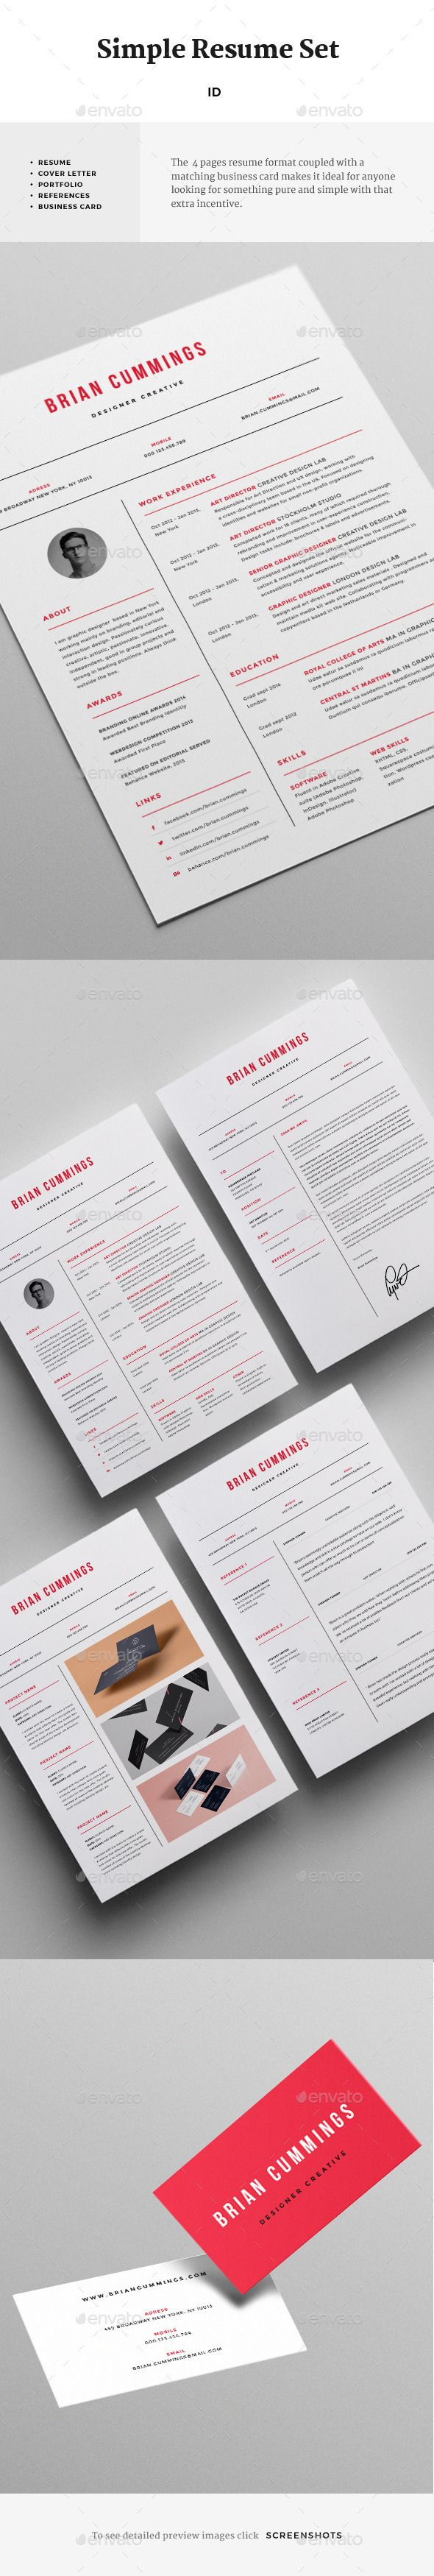 Design Resumes images on Pinterest